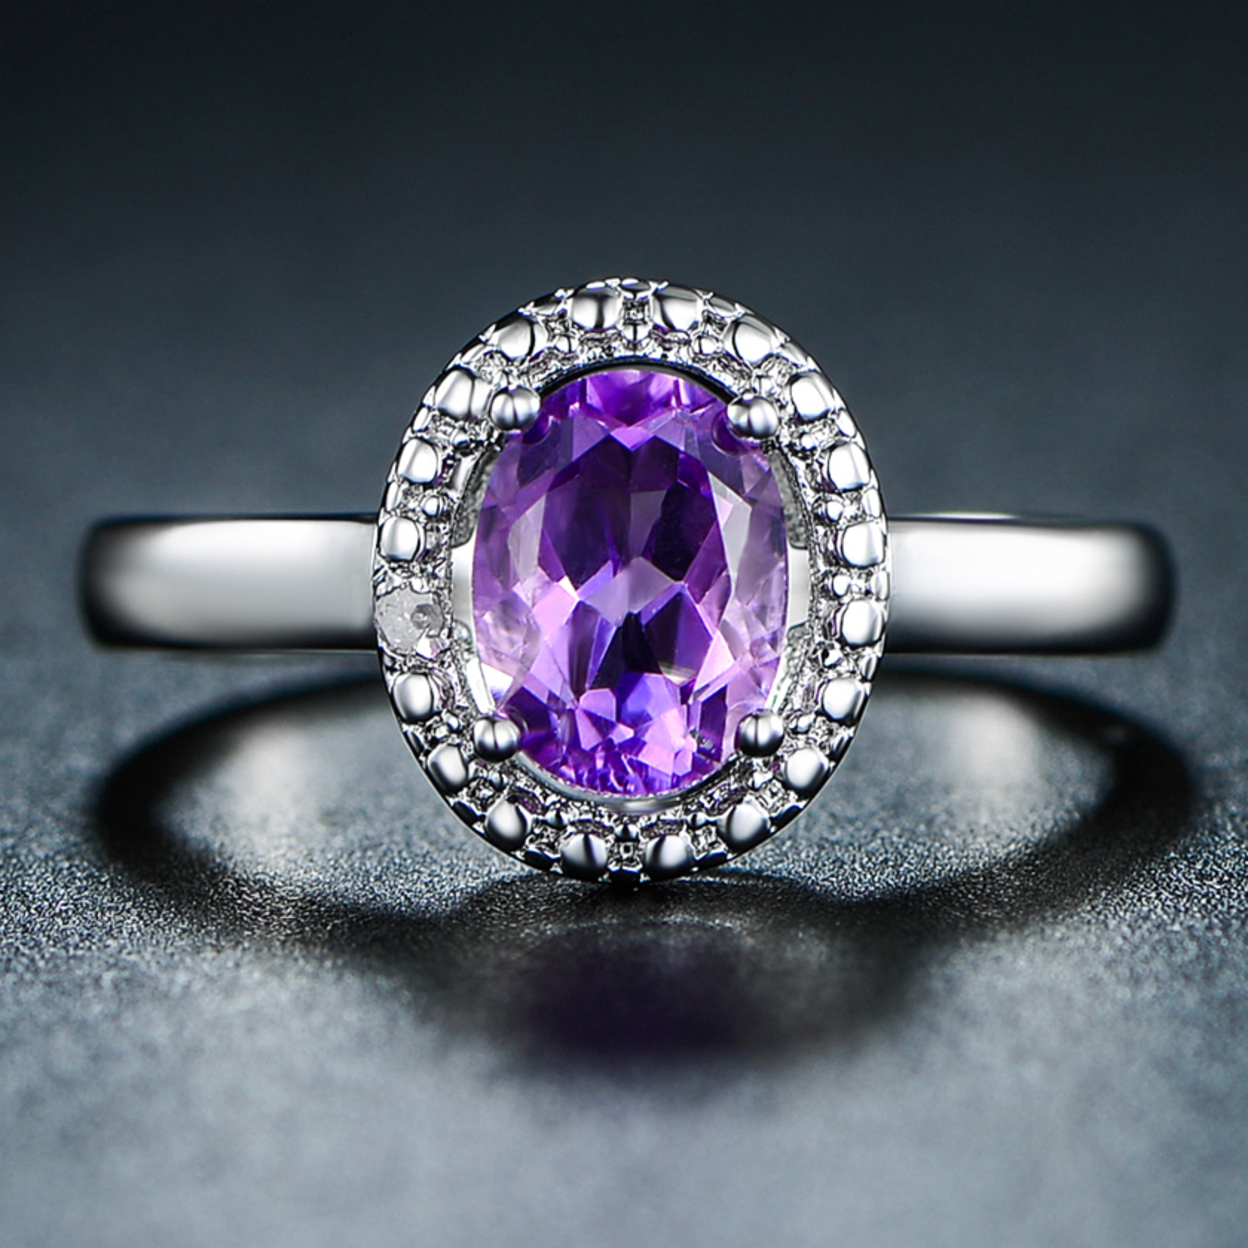 18k White Gold Plated 4ct. Purple Topaz & Diamond Accent Ring 5